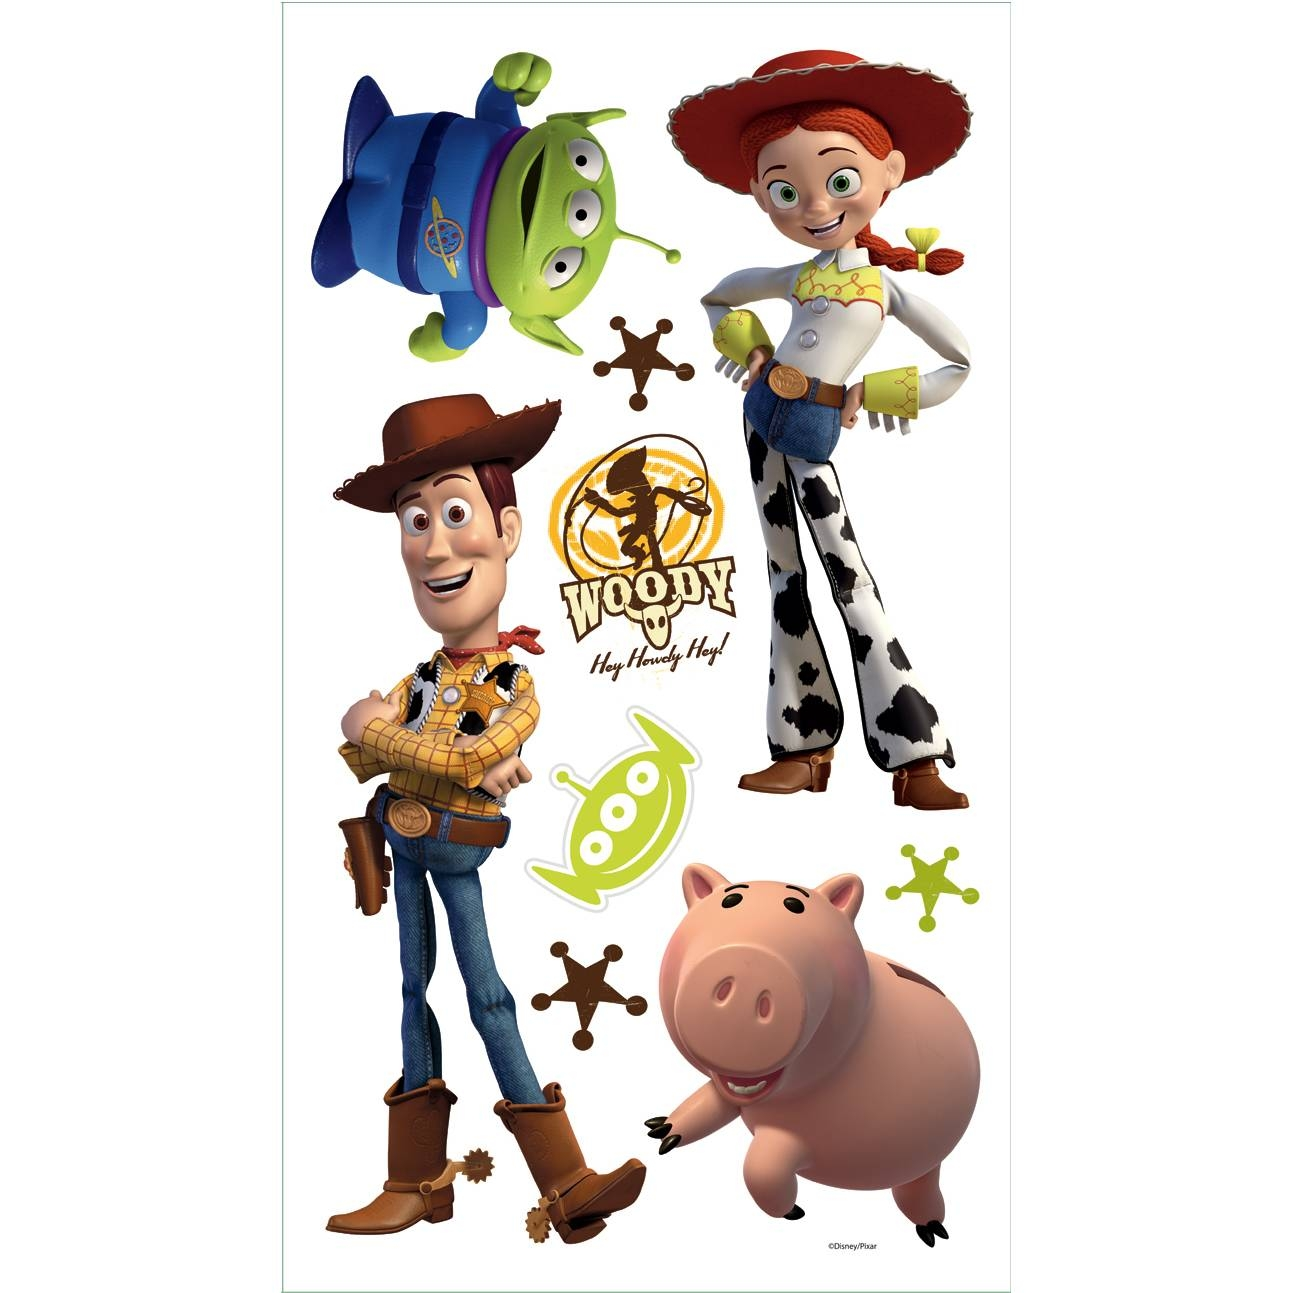 Toy Story 3 Removable Decals | Potty Training Concepts Throughout Most Up To Date Toy Story Wall Stickers (View 15 of 25)